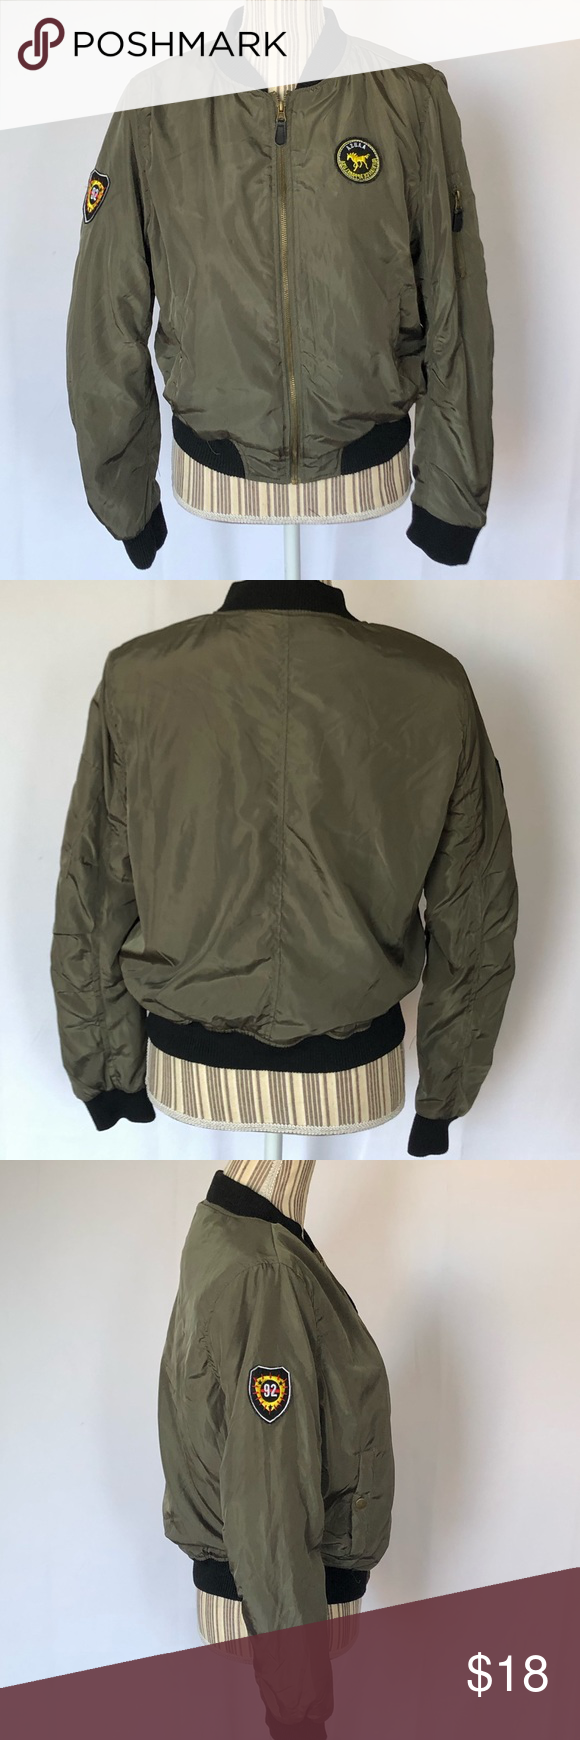 Ambiance Green Bomber Jacket With Patches Size Lg Bomber Jacket Bomber Jacket Patches Green Bomber Jacket [ 1740 x 580 Pixel ]